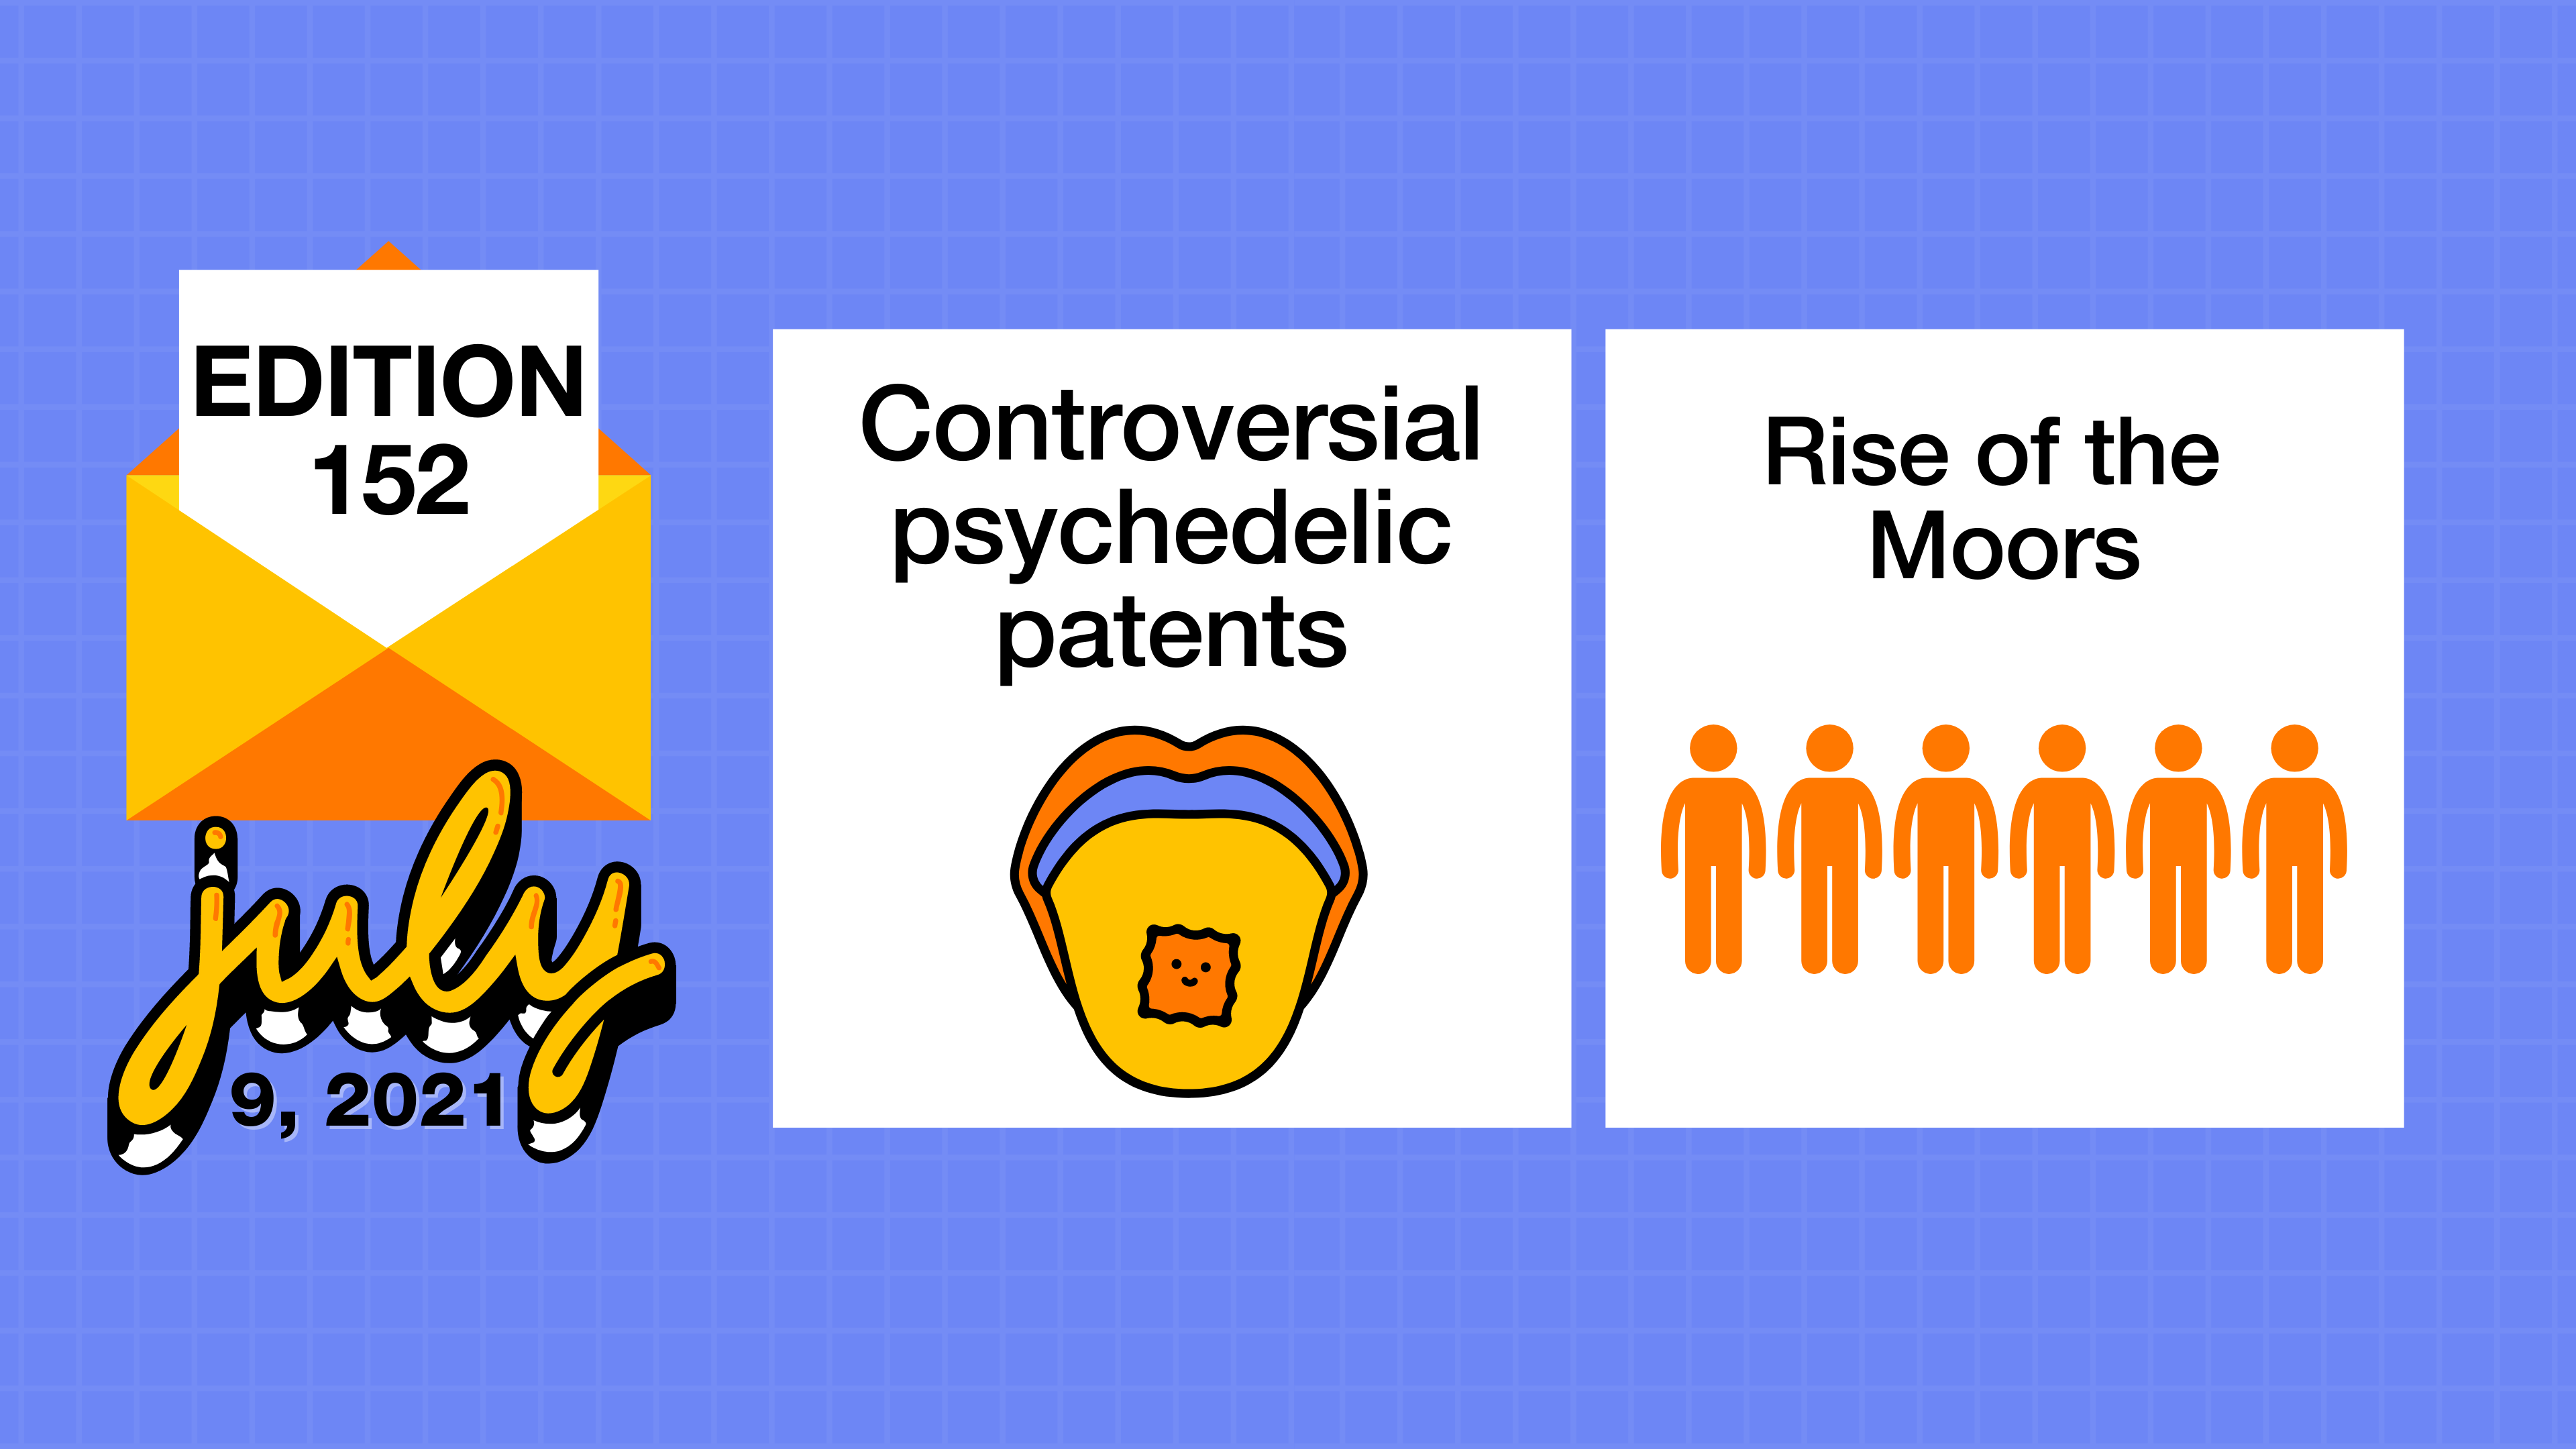 Controversial psychedelic patents and the rise of the Moors